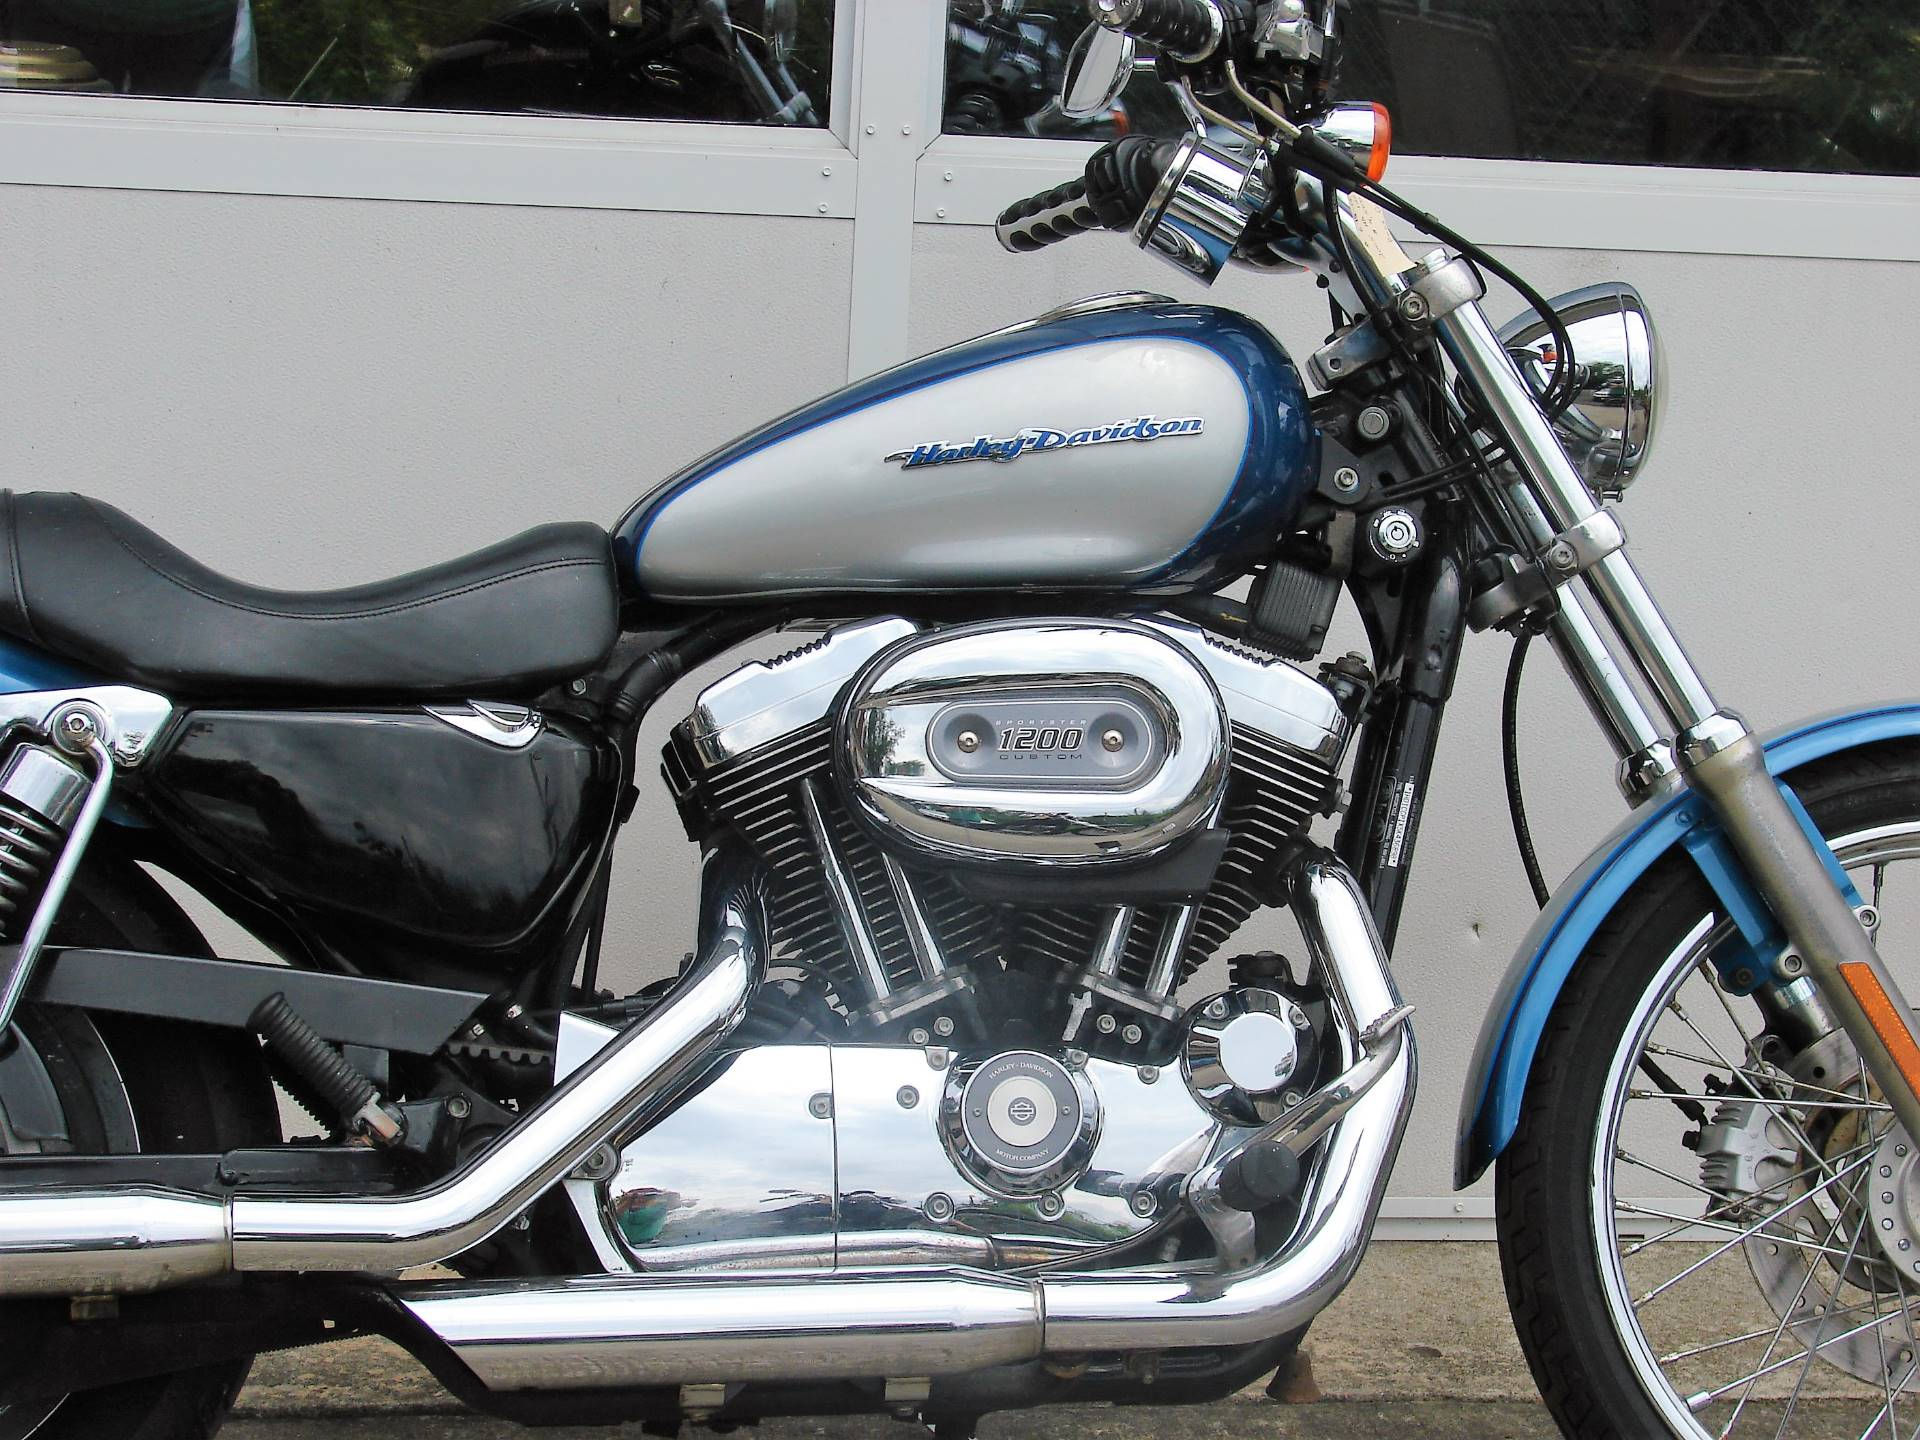 2005 Harley-Davidson Sportster® XL 1200 Custom in Williamstown, New Jersey - Photo 2